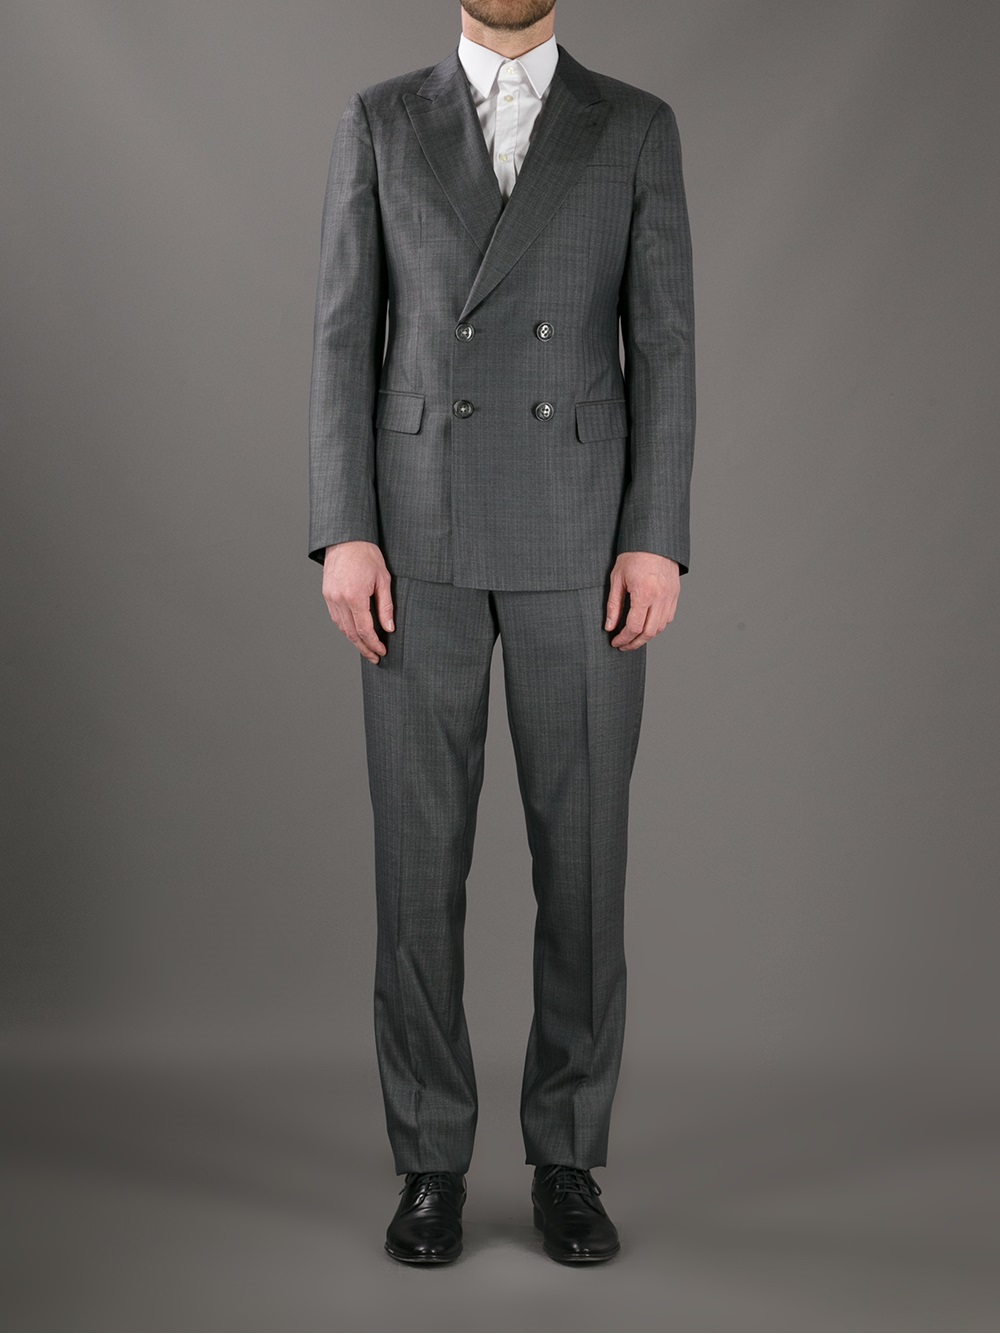 Giorgio armani Pinstripe Double Breasted Suit in Gray for Men | Lyst